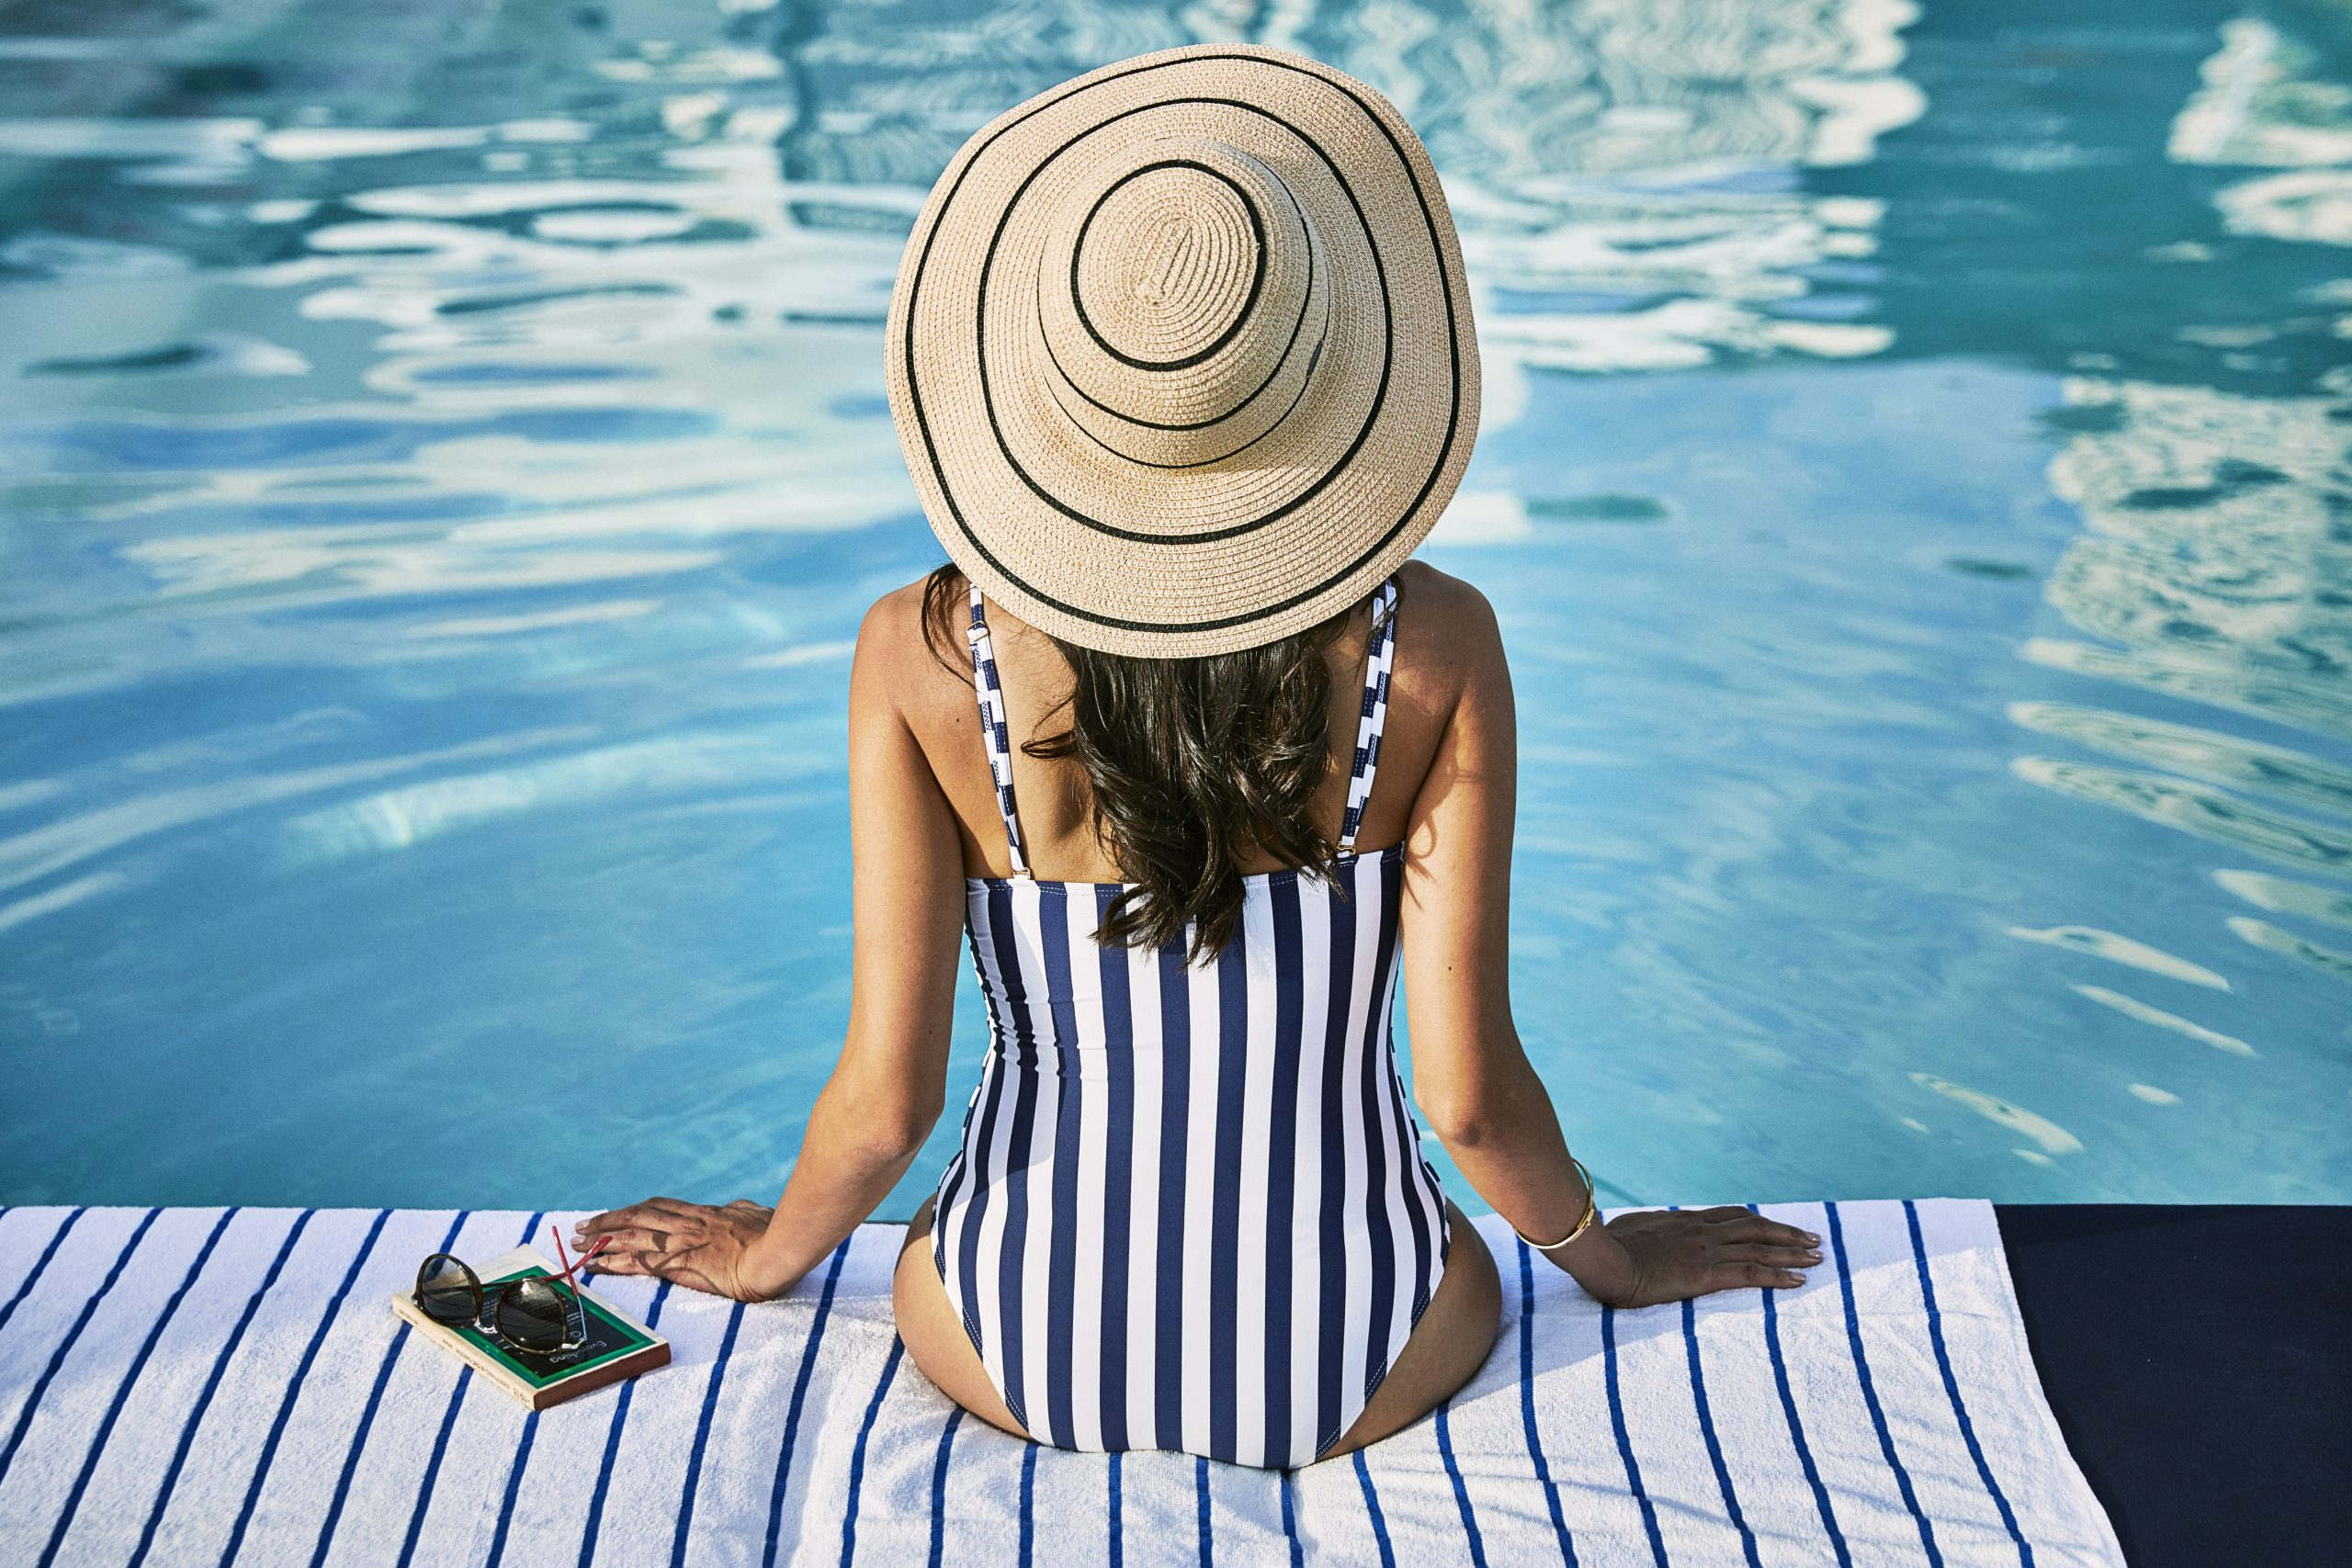 WOH_P139 Lifestyle Viewpoint Pool Hat